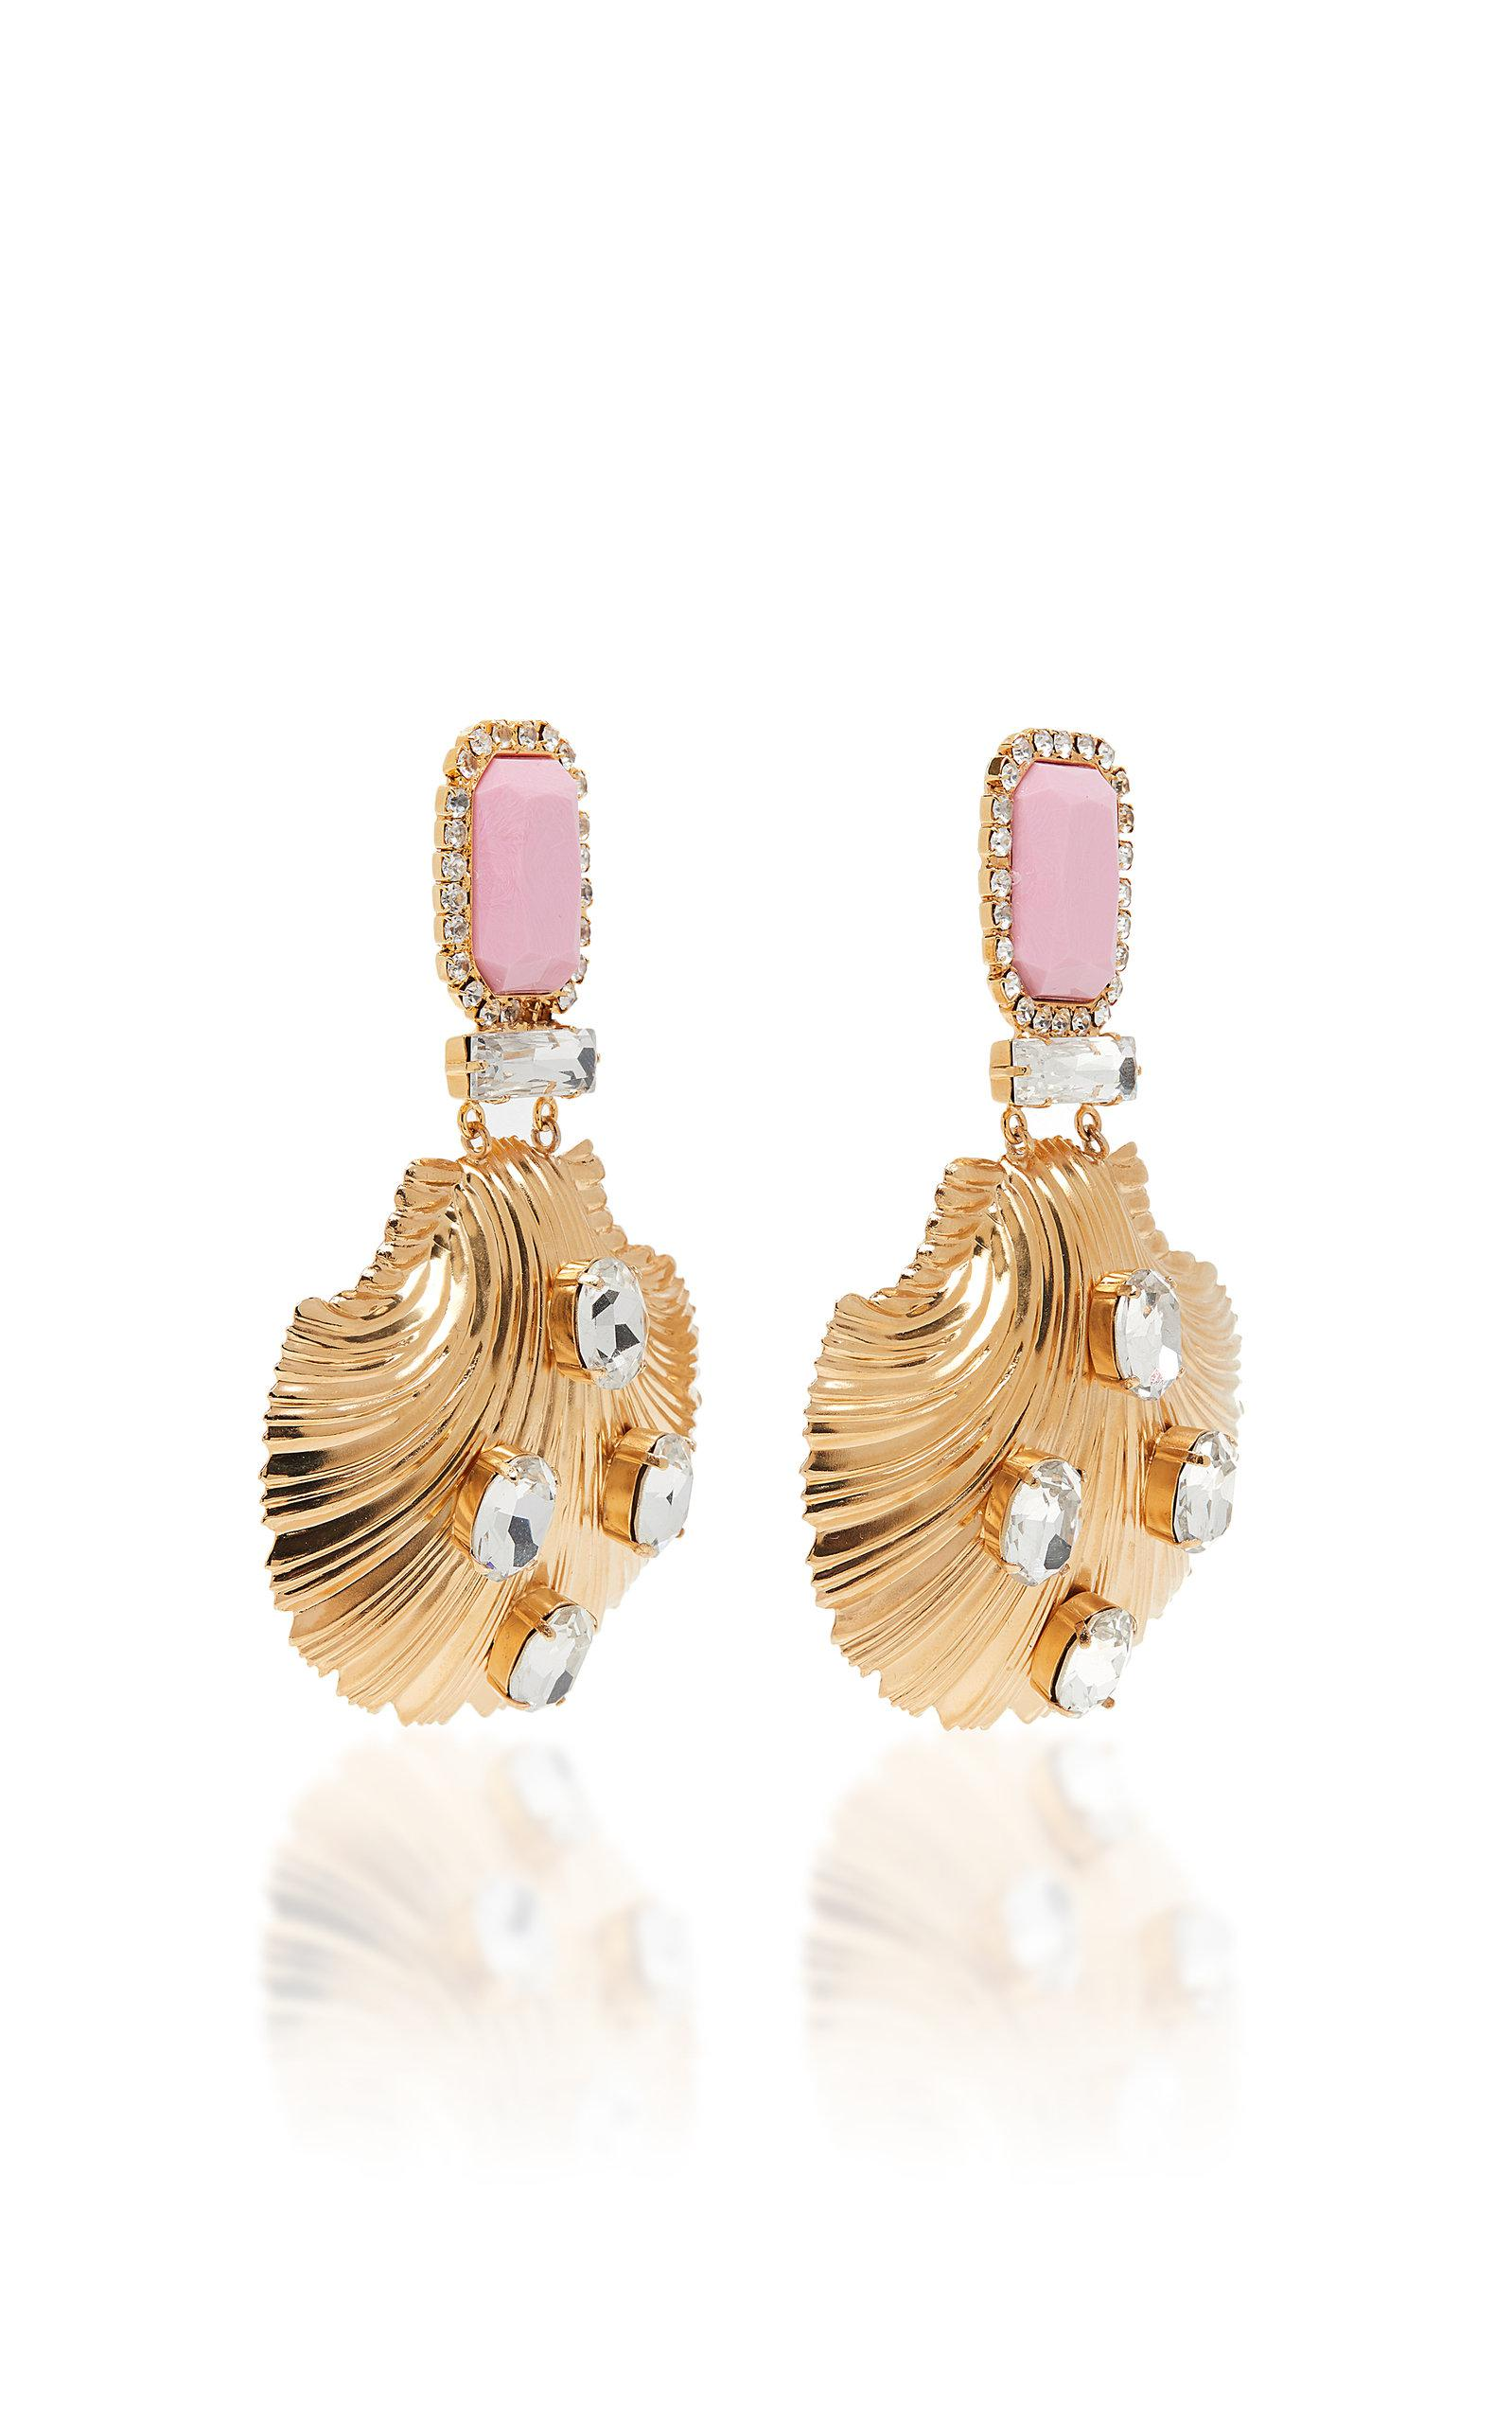 ef837e5a99 Alessandra Rich Pink And Gold Seashell Earrings in Metallic - Lyst